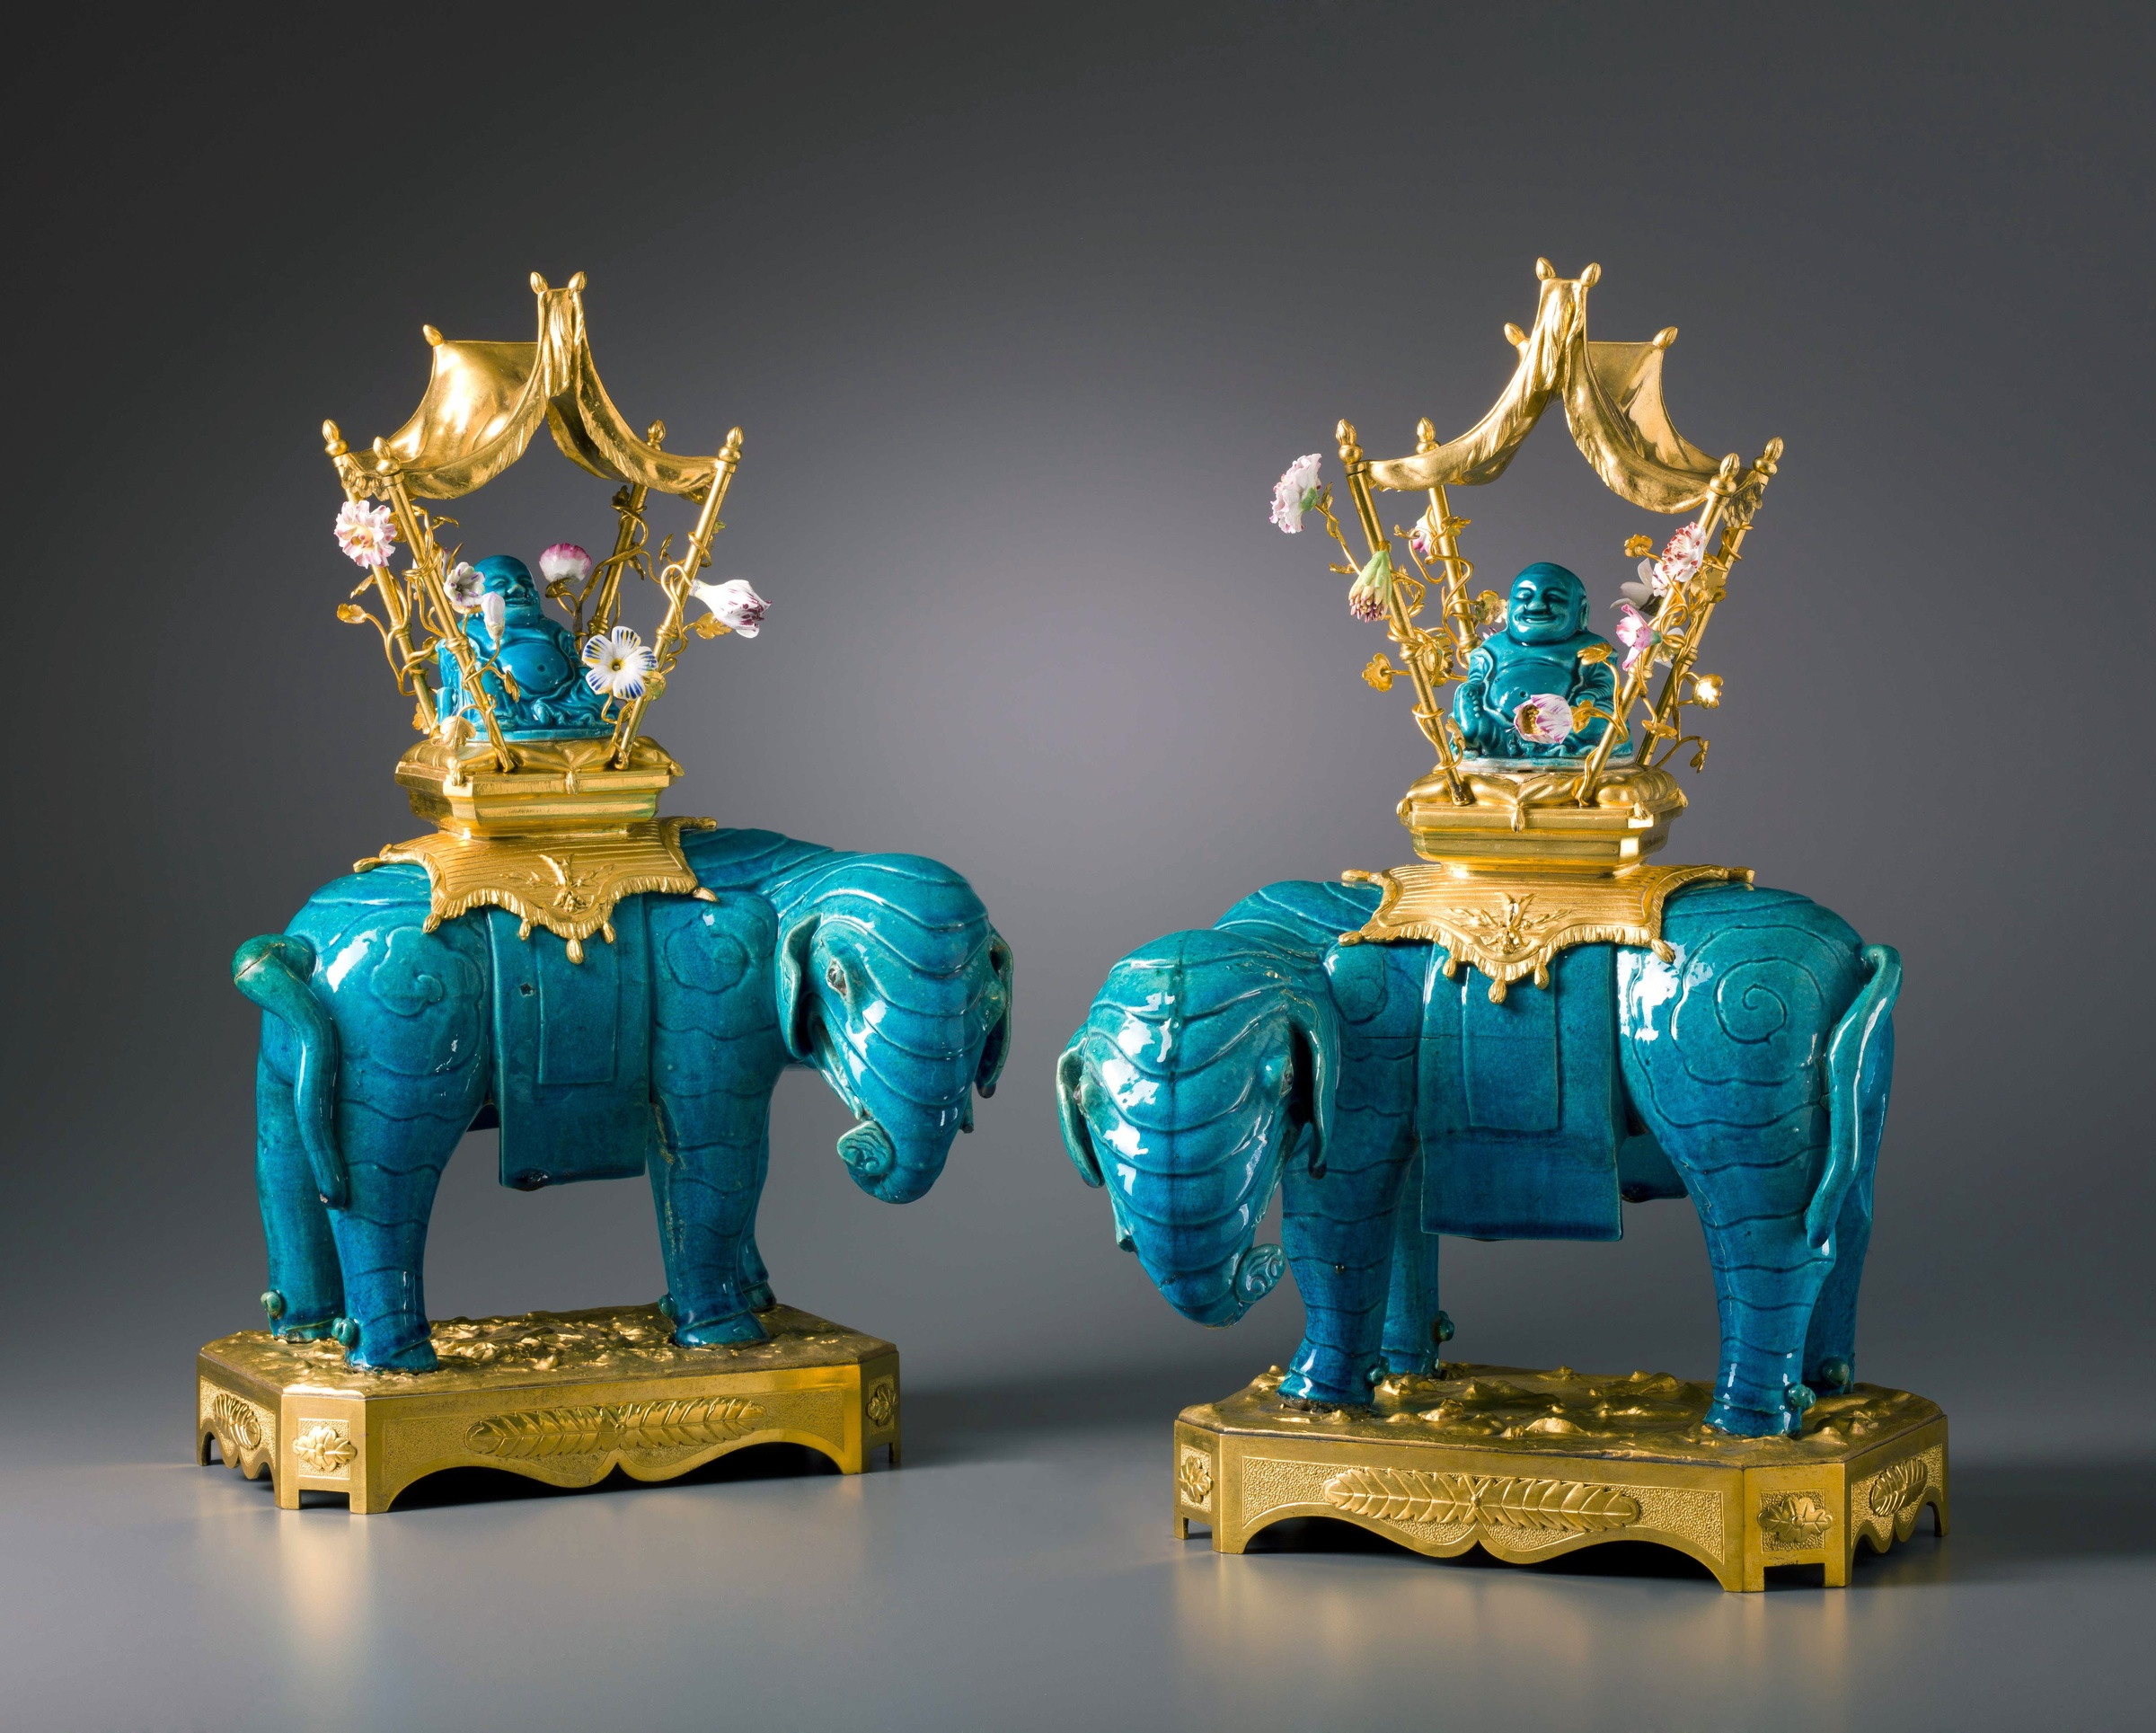 25 Lovely Ming Dynasty Vase Value 2021 free download ming dynasty vase value of unknown a pair of louis xv gilt bronze mounted ming dynasty throughout a pair of louis xv gilt bronze mounted ming dynasty elephants with qing dynasty buddhas